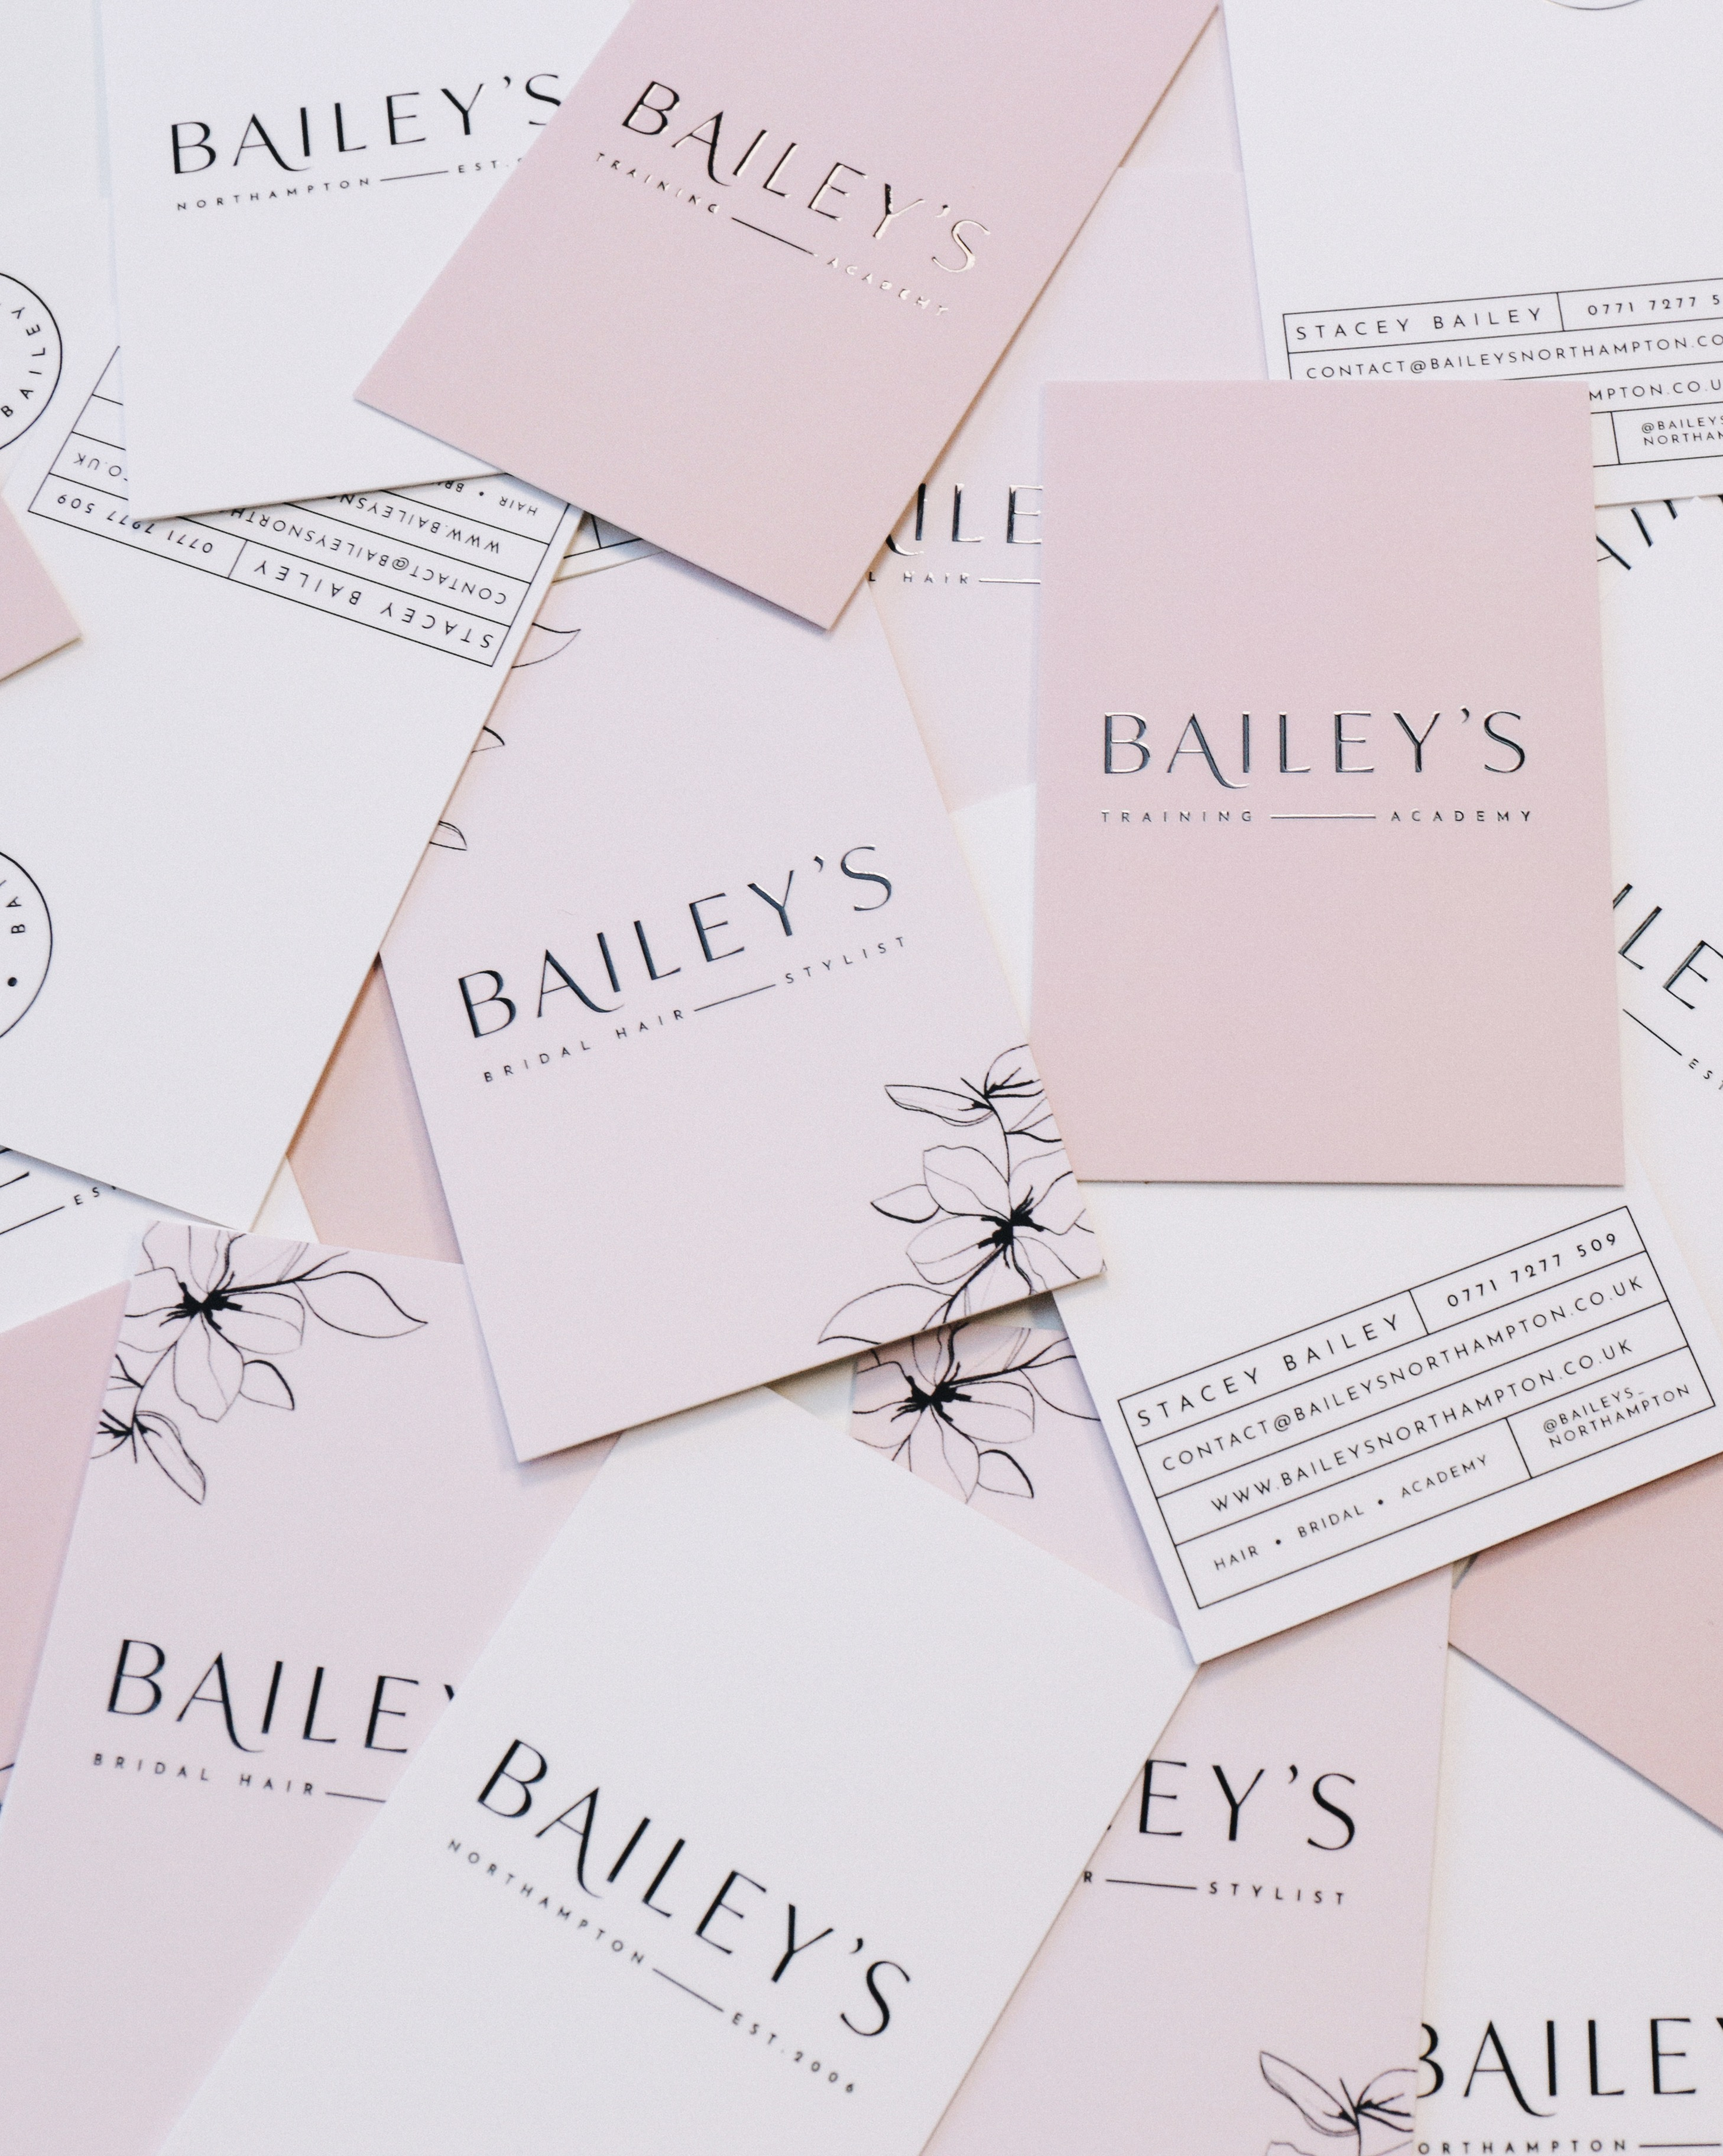 Bailey's Northampton business cards